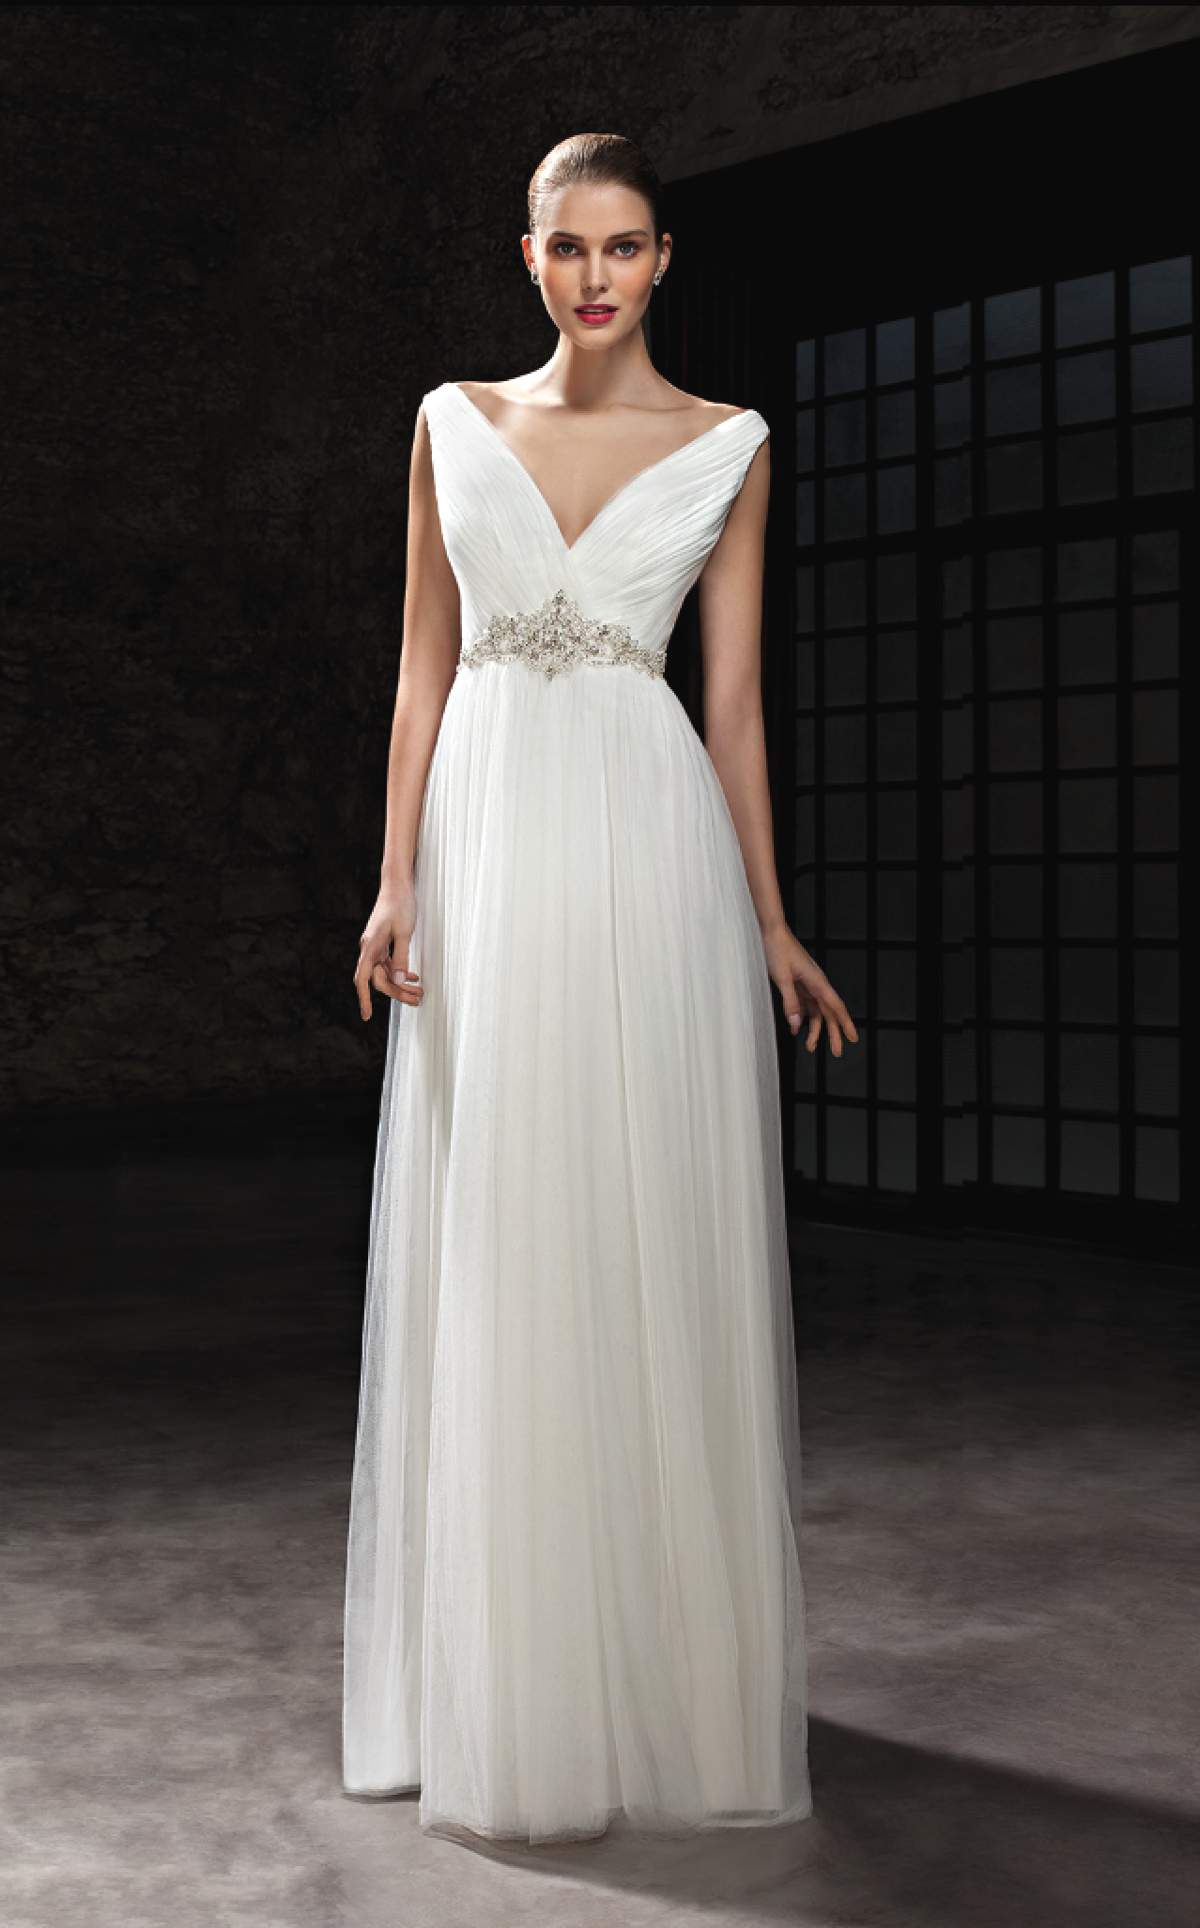 Wedding dresses to suit your body shape love our wedding for Body shaper for wedding dress